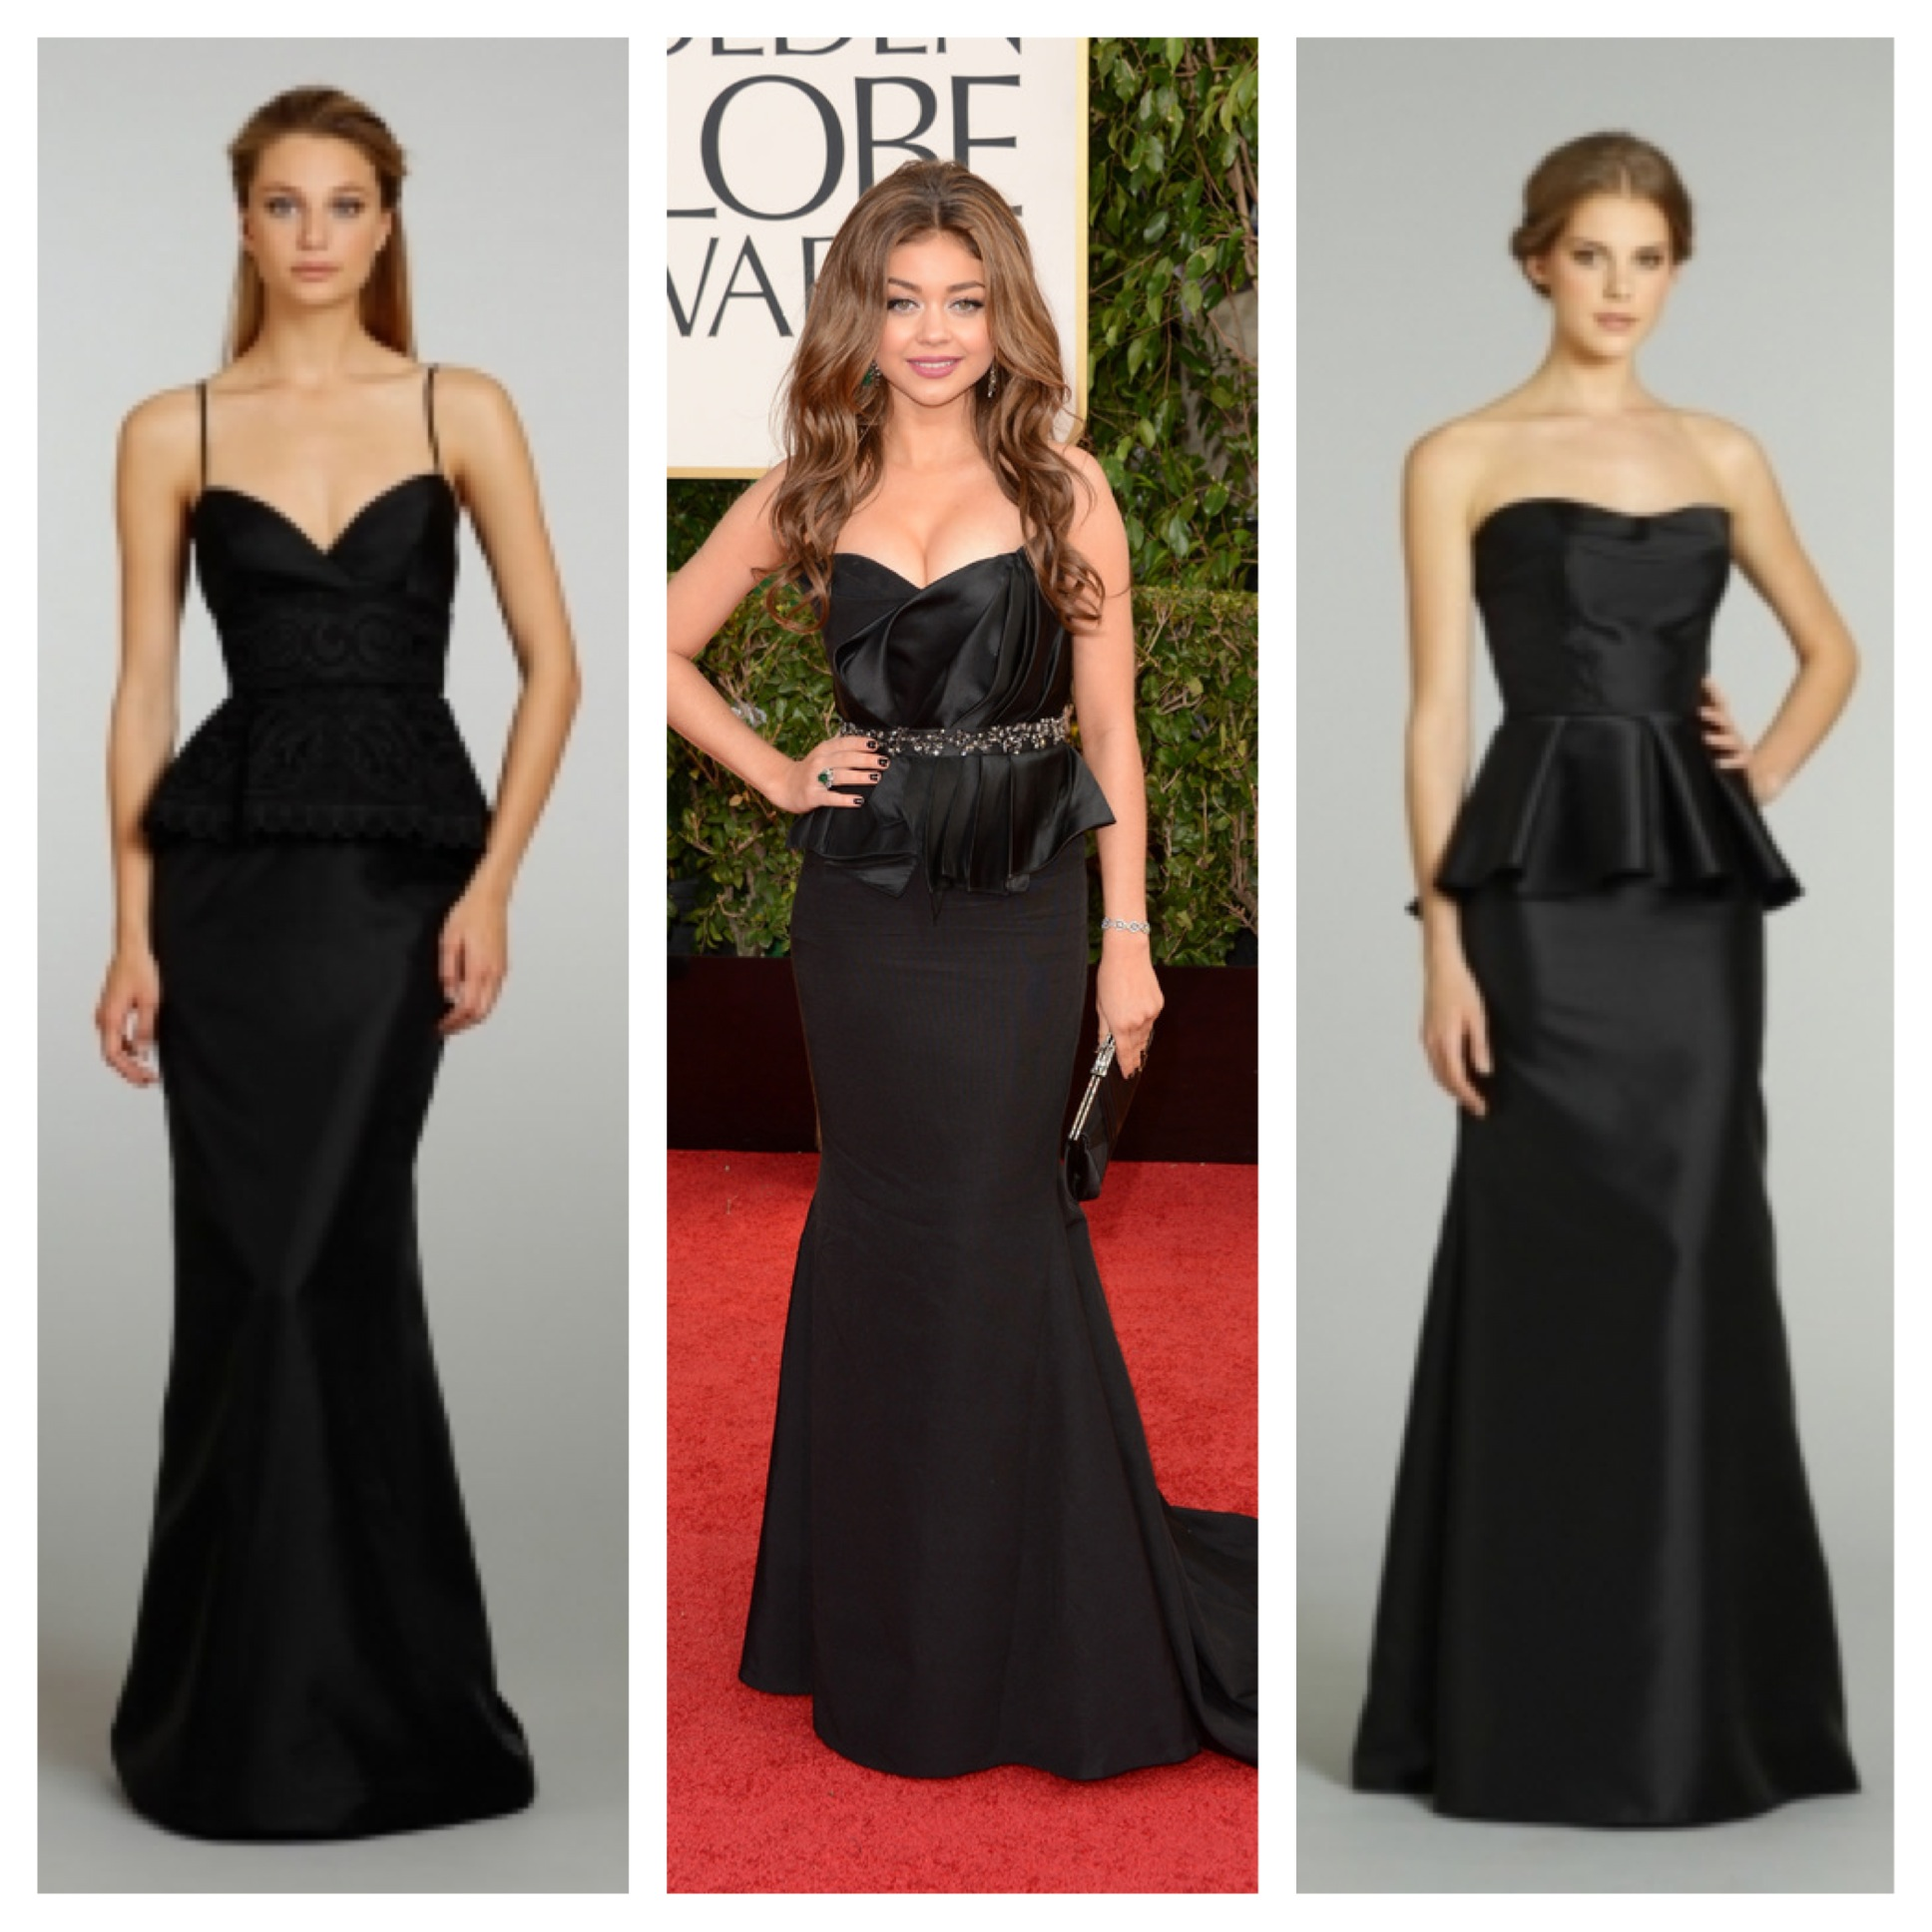 Wedding Gowns For Hourglass Figures: Red Carpet Looks In Brilliant Reds, Emeralds And Classic